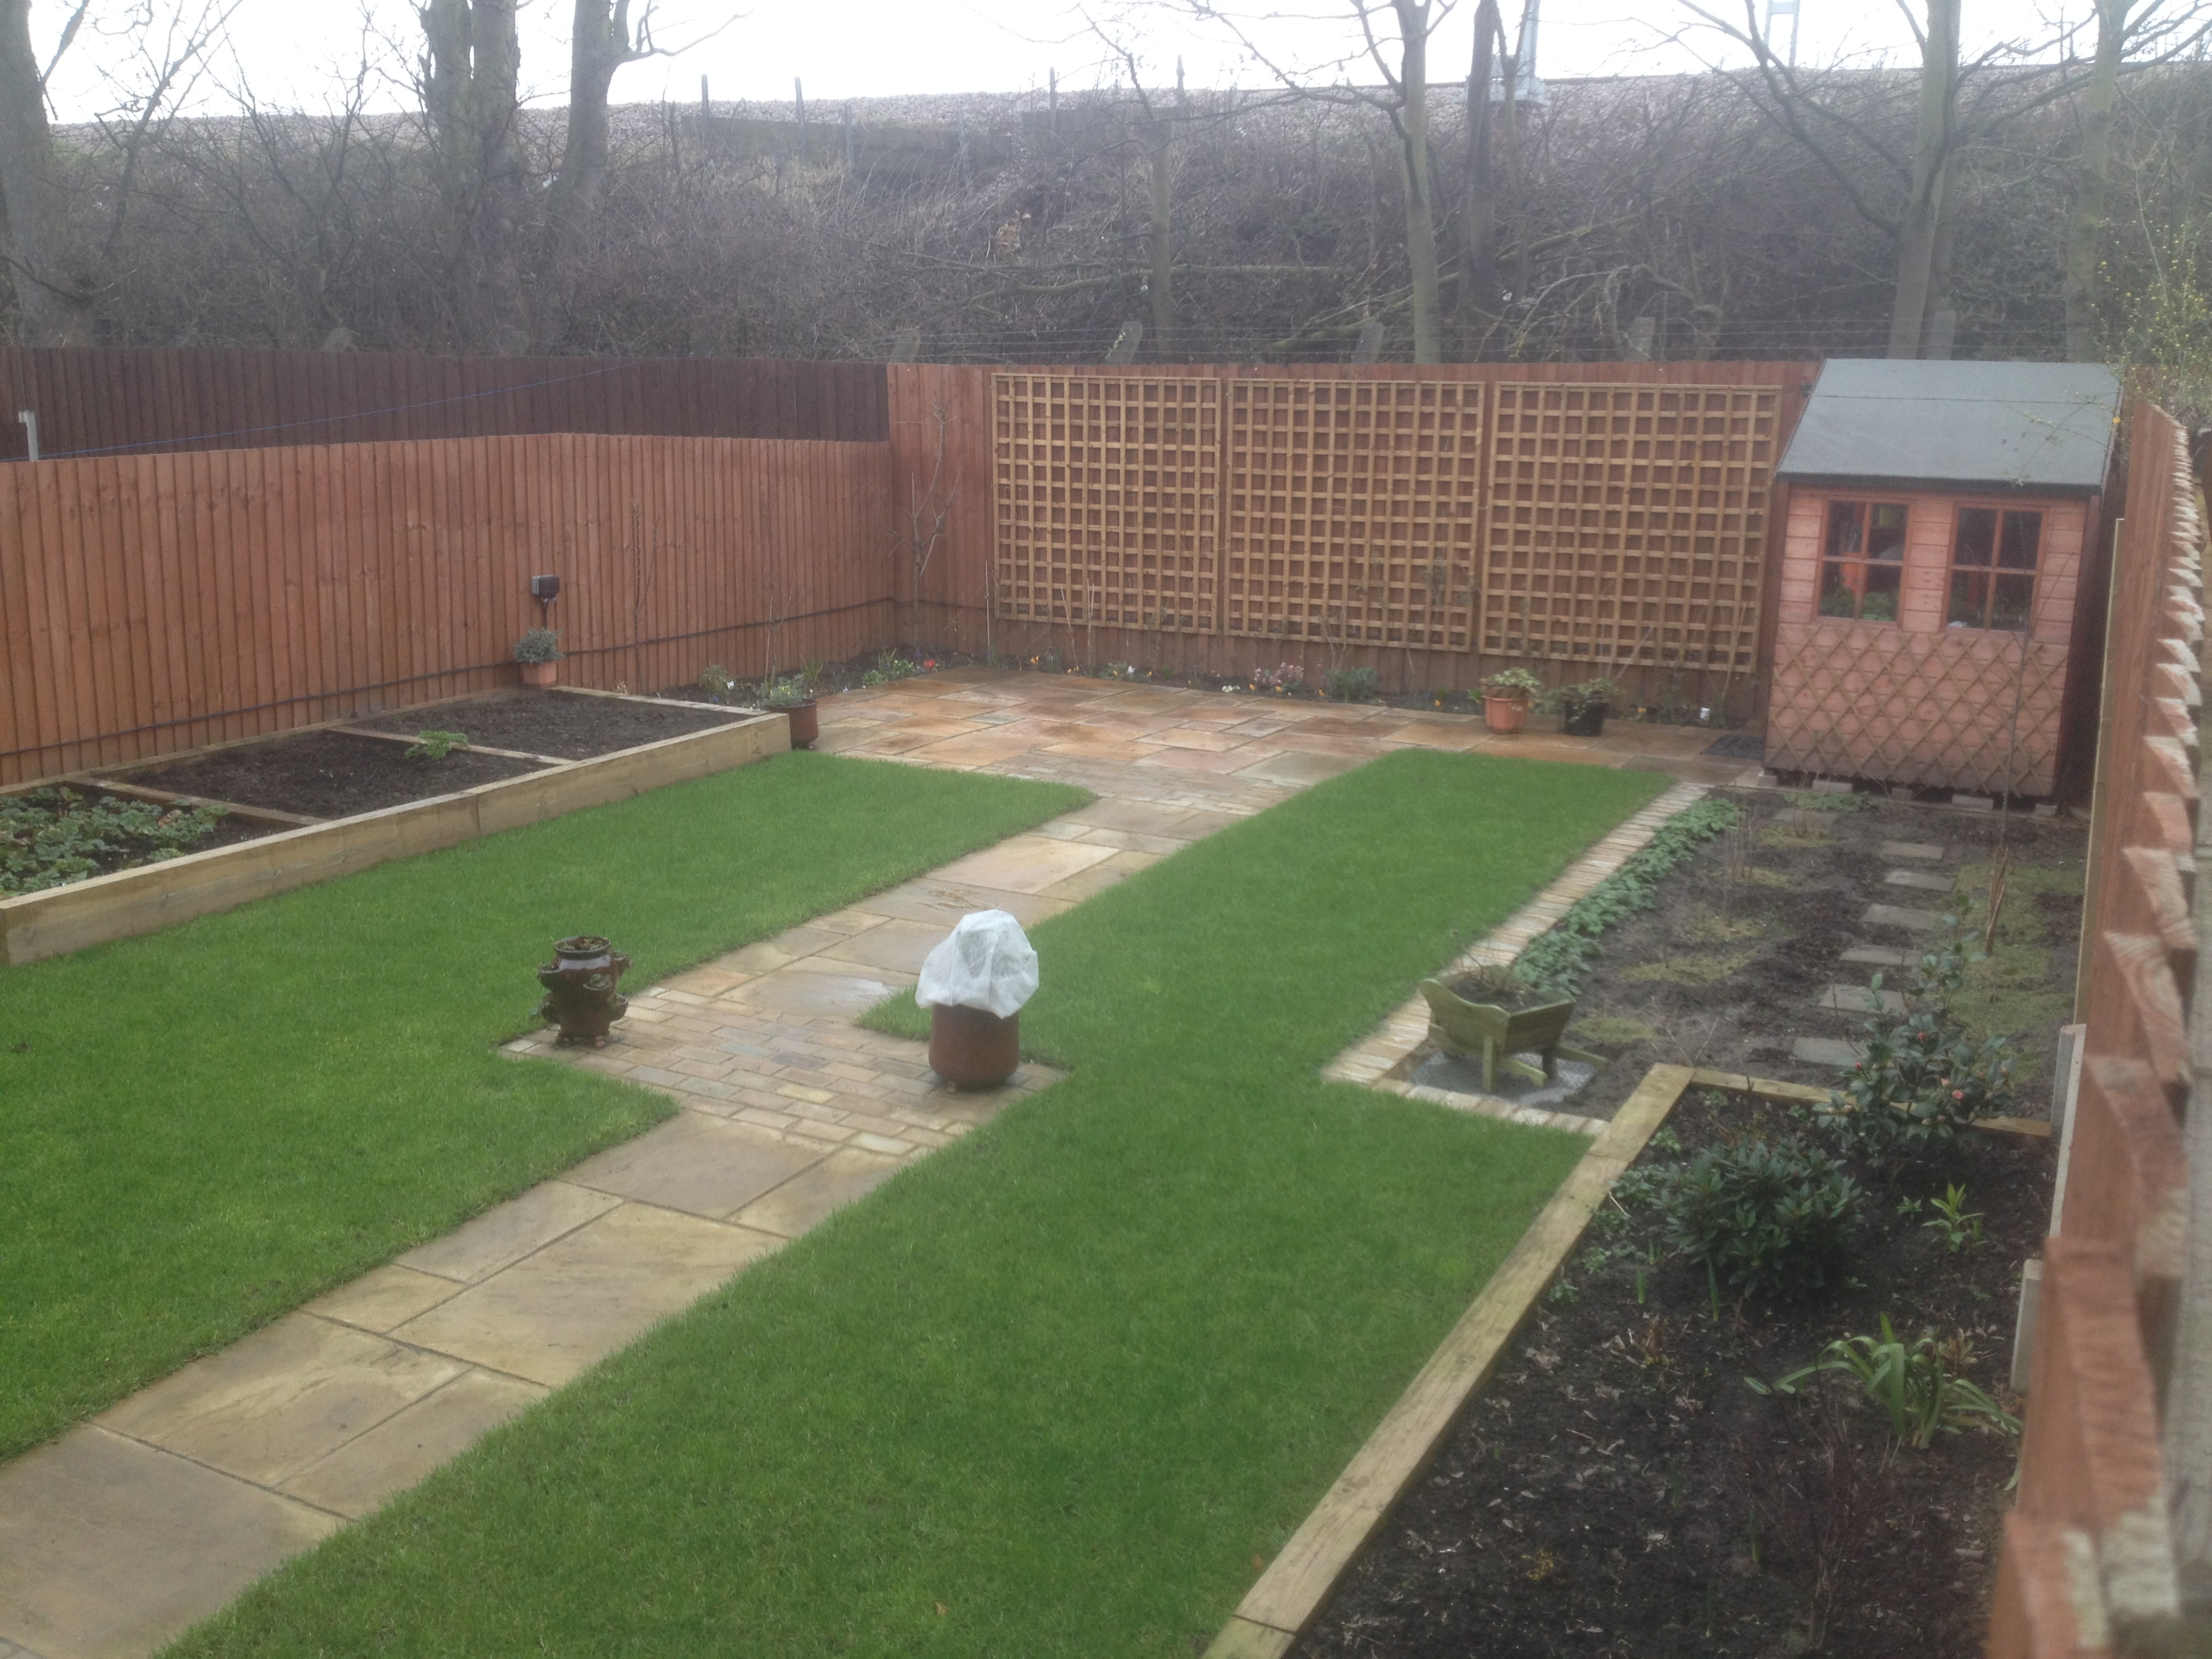 Indian sandstone paving and raised beds